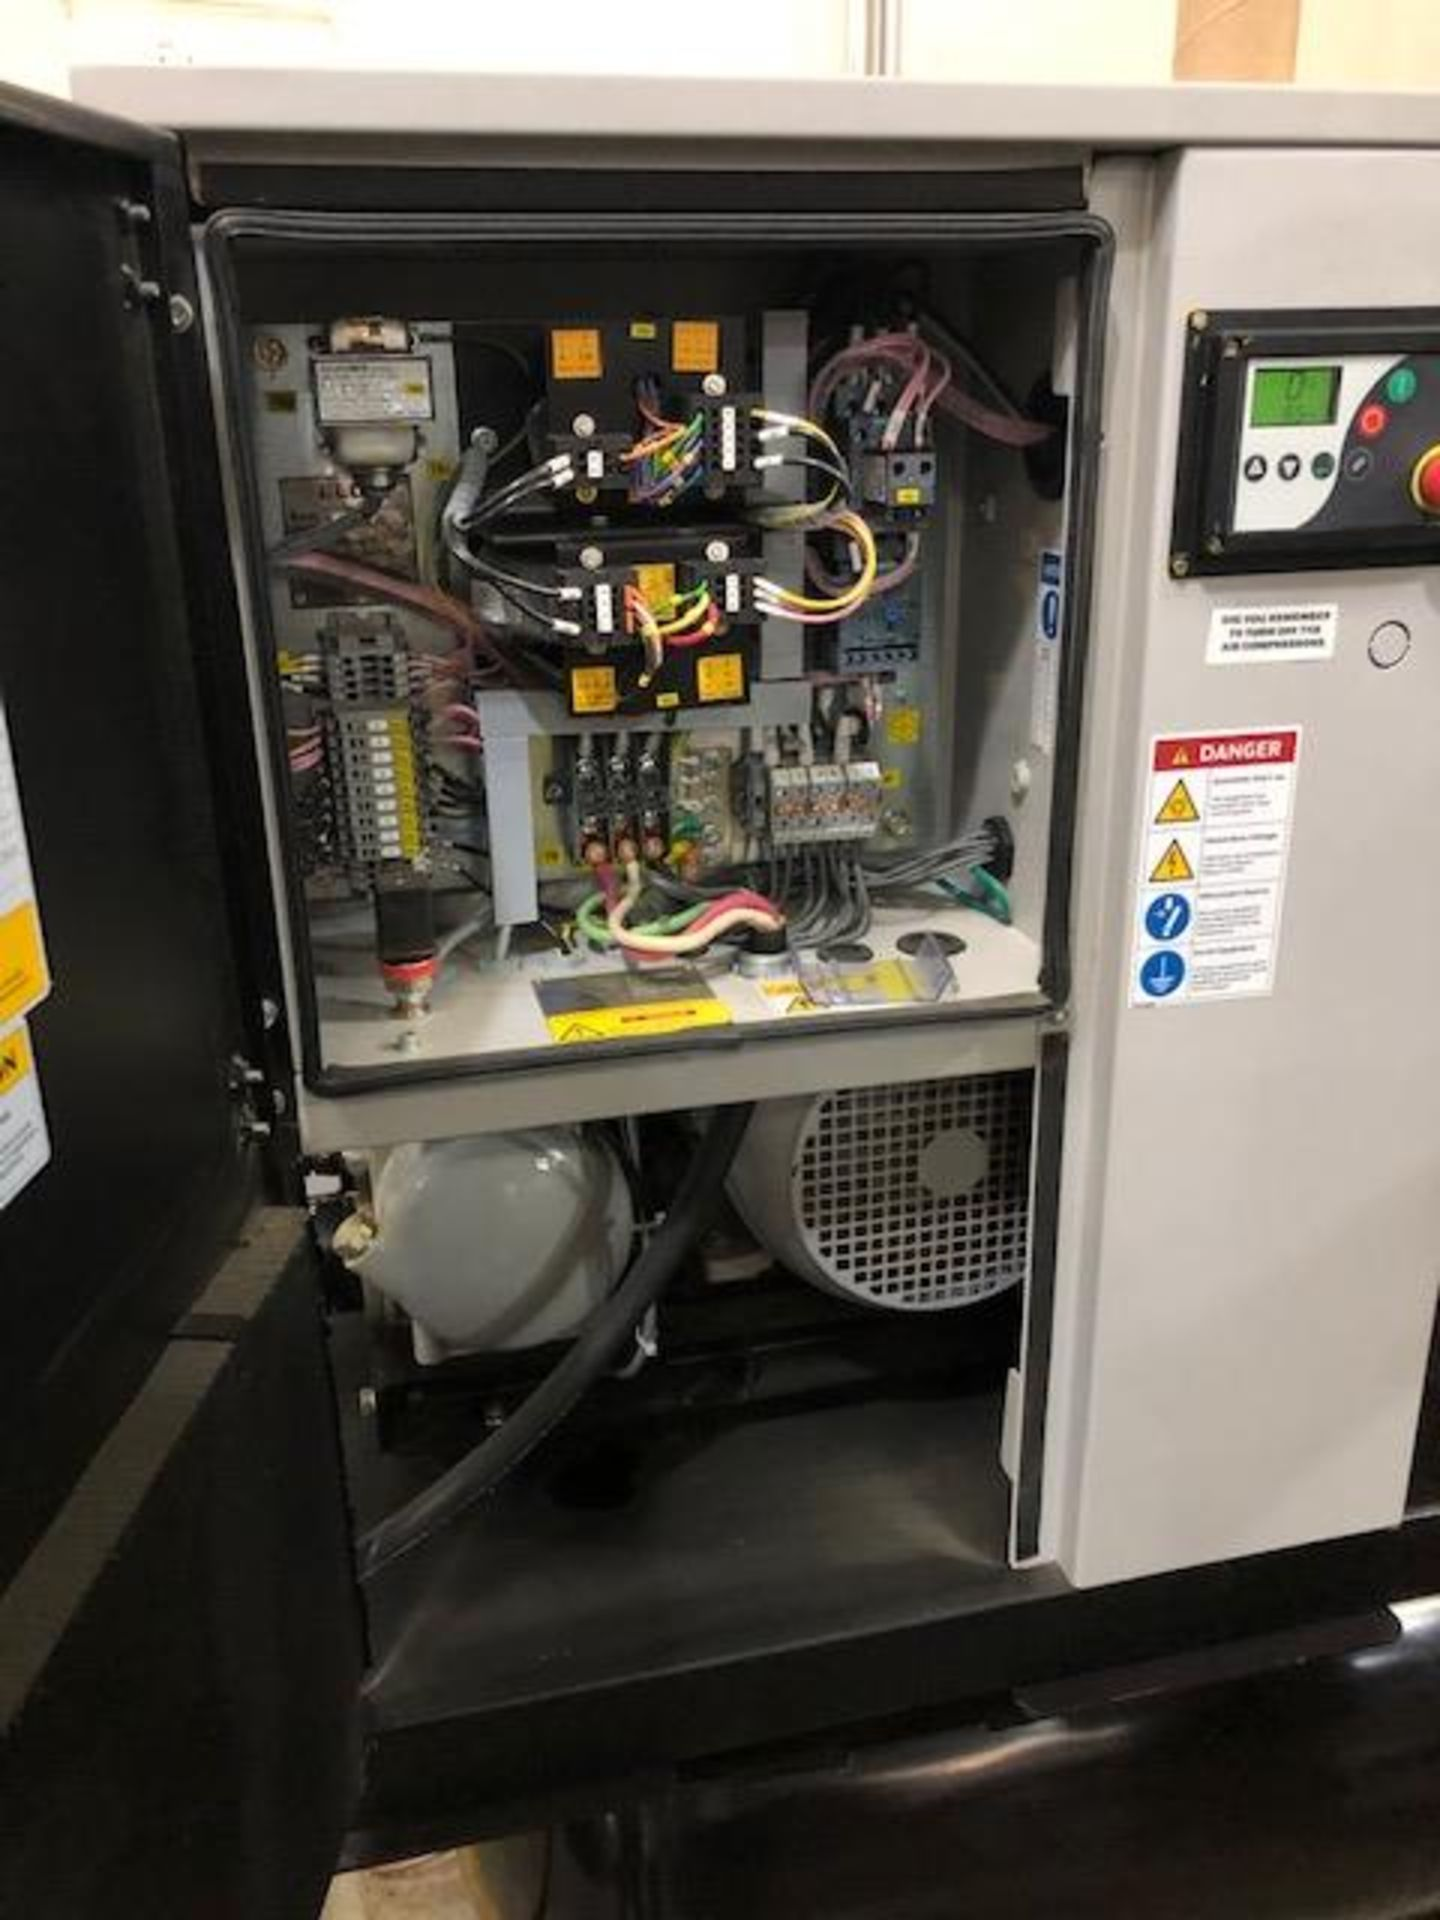 Used-Green Vault Systems Precision Batcher for Batching & Packaging Flower w/ Air Compressor - Image 14 of 23